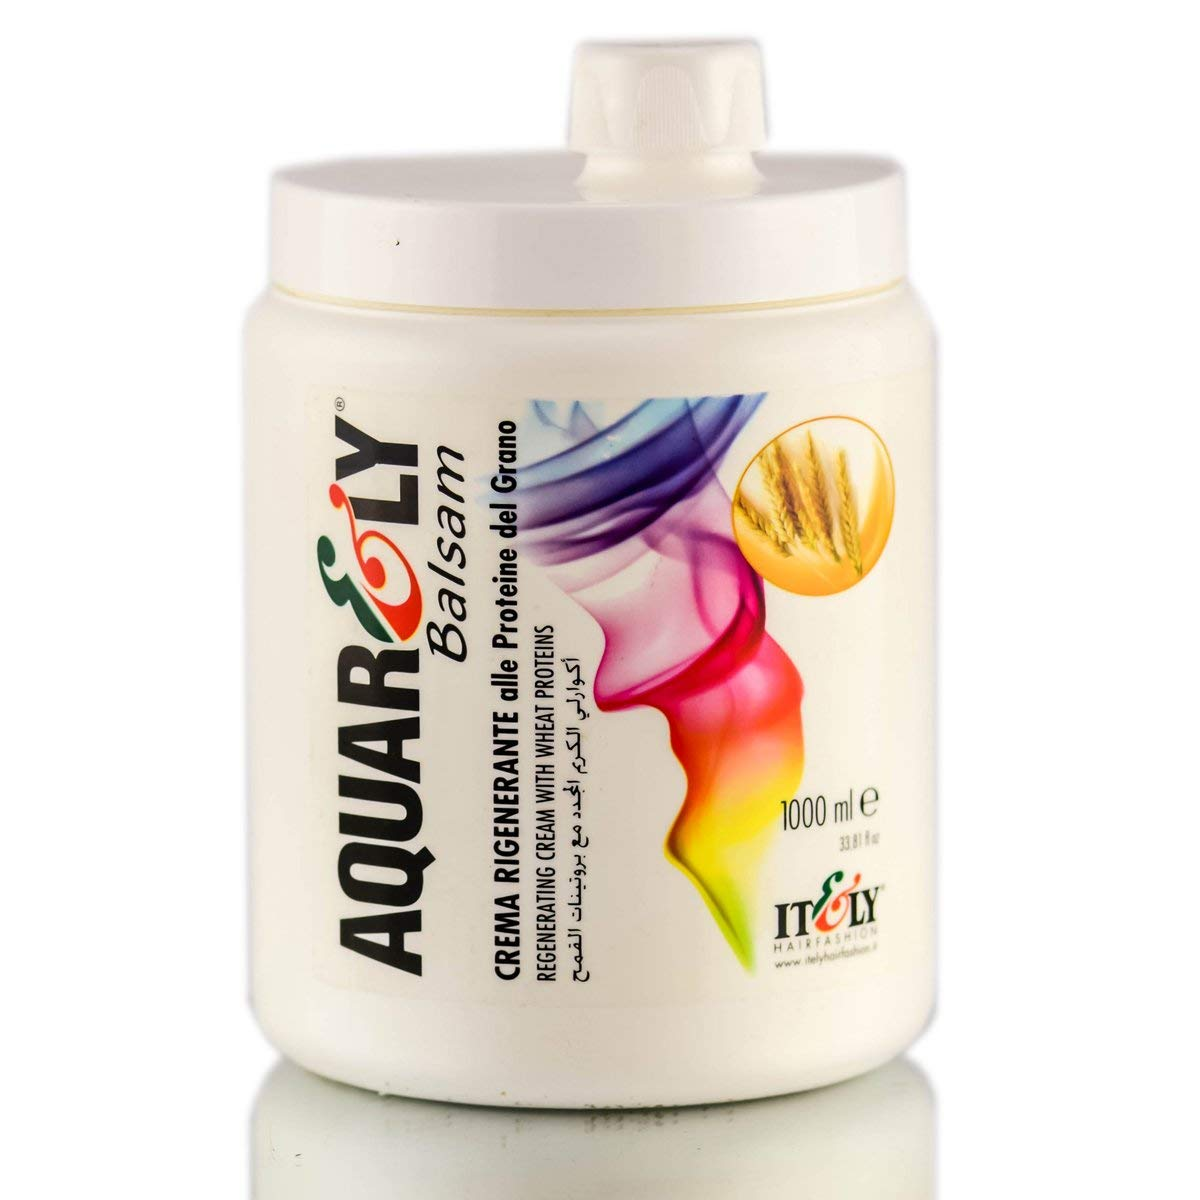 Aquarely Deep Conditioner Wheat Protein Balsam 1 000g Buy Online